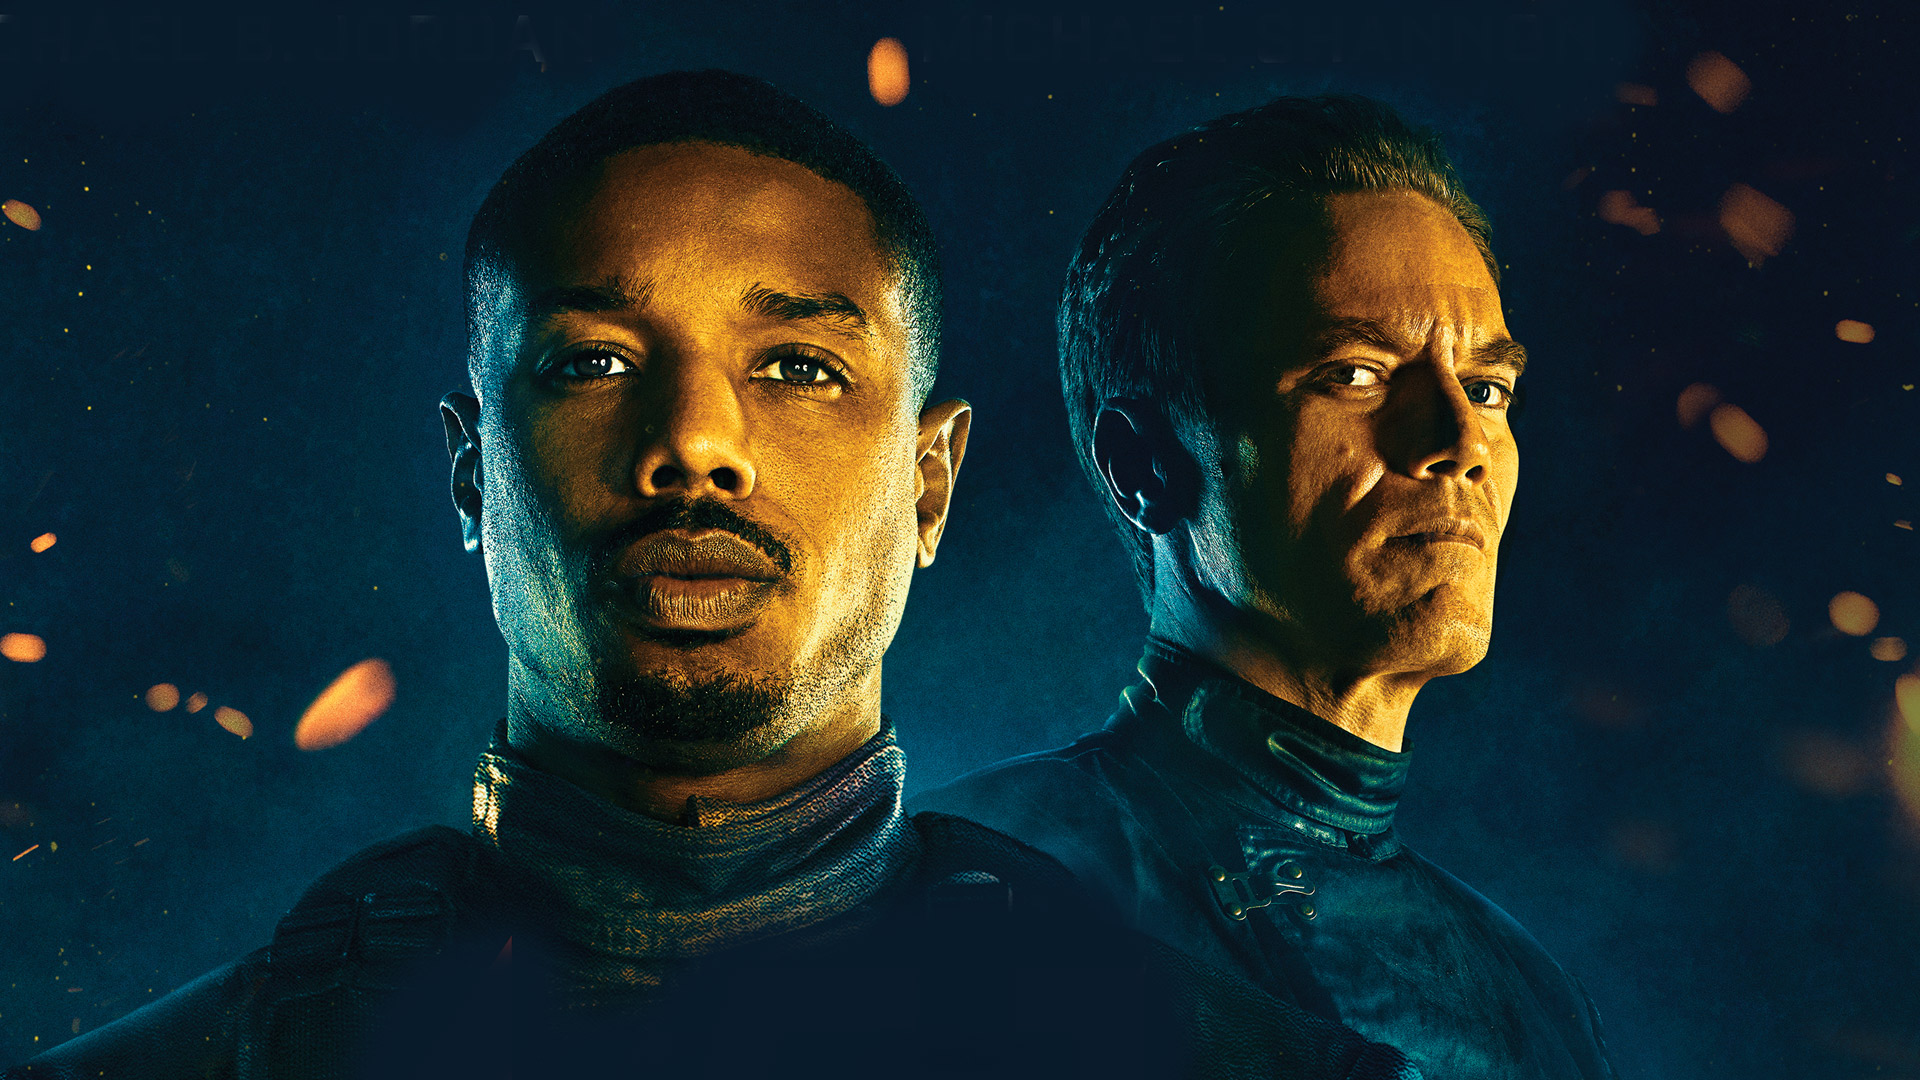 fahrenheit 451 - watch the hbo original movie | hbo